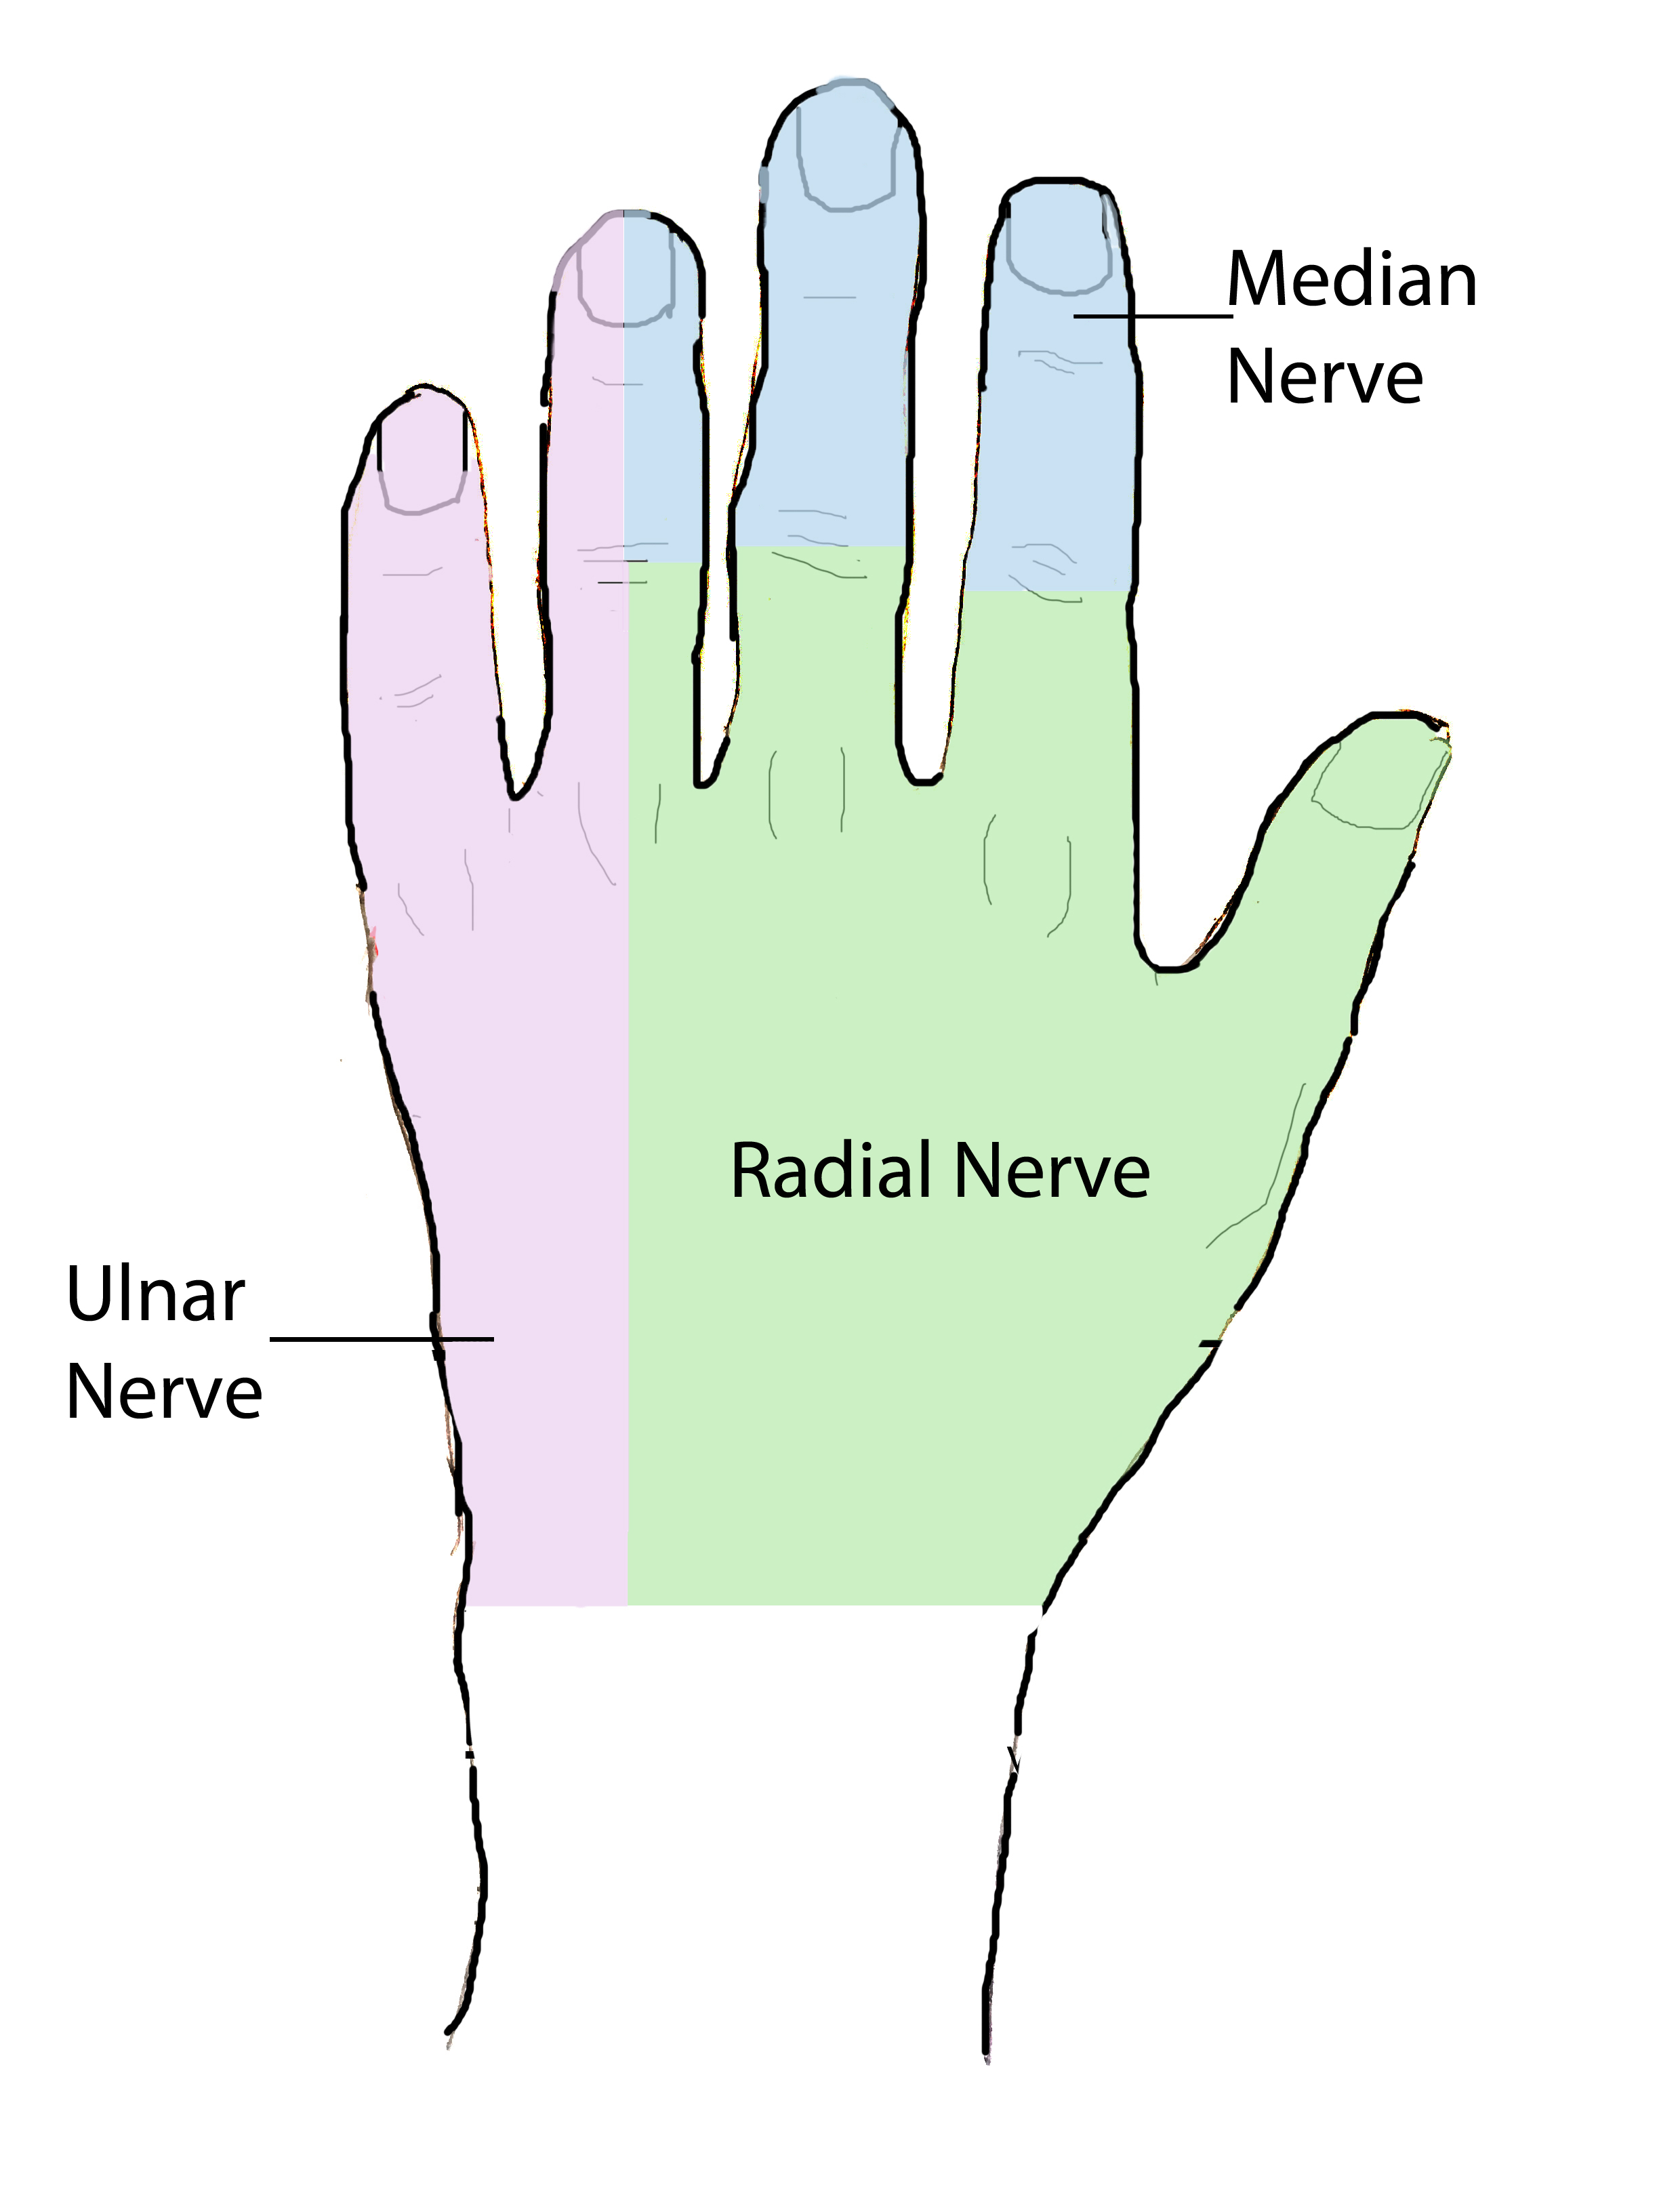 Hand Anatomy Overview | Bones, Blood Supply, Muscles | Geeky Medics